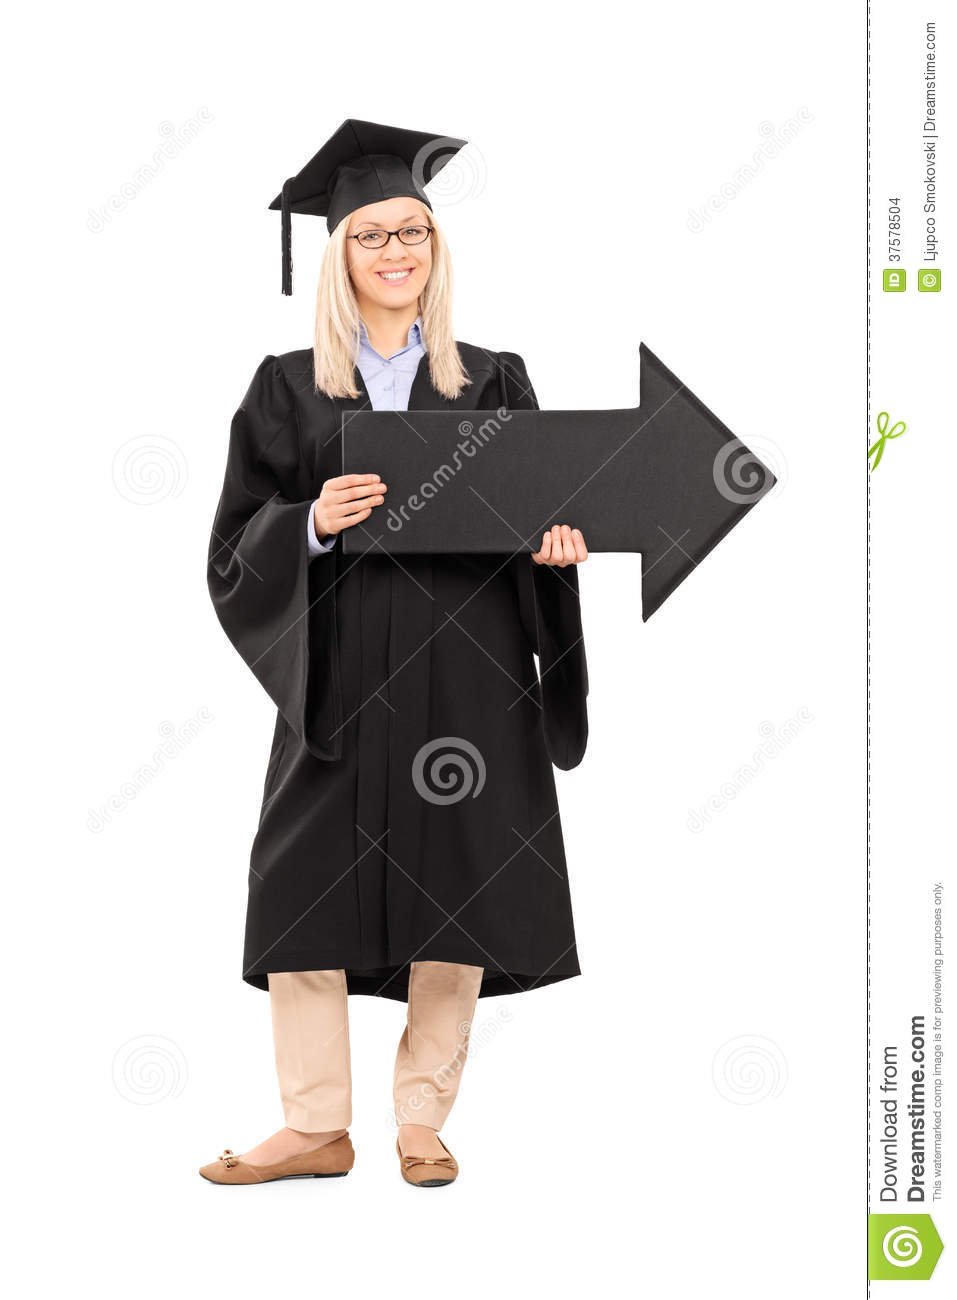 Smiling Female In Graduation Gown Holding A Big Black Arrow Stock ...